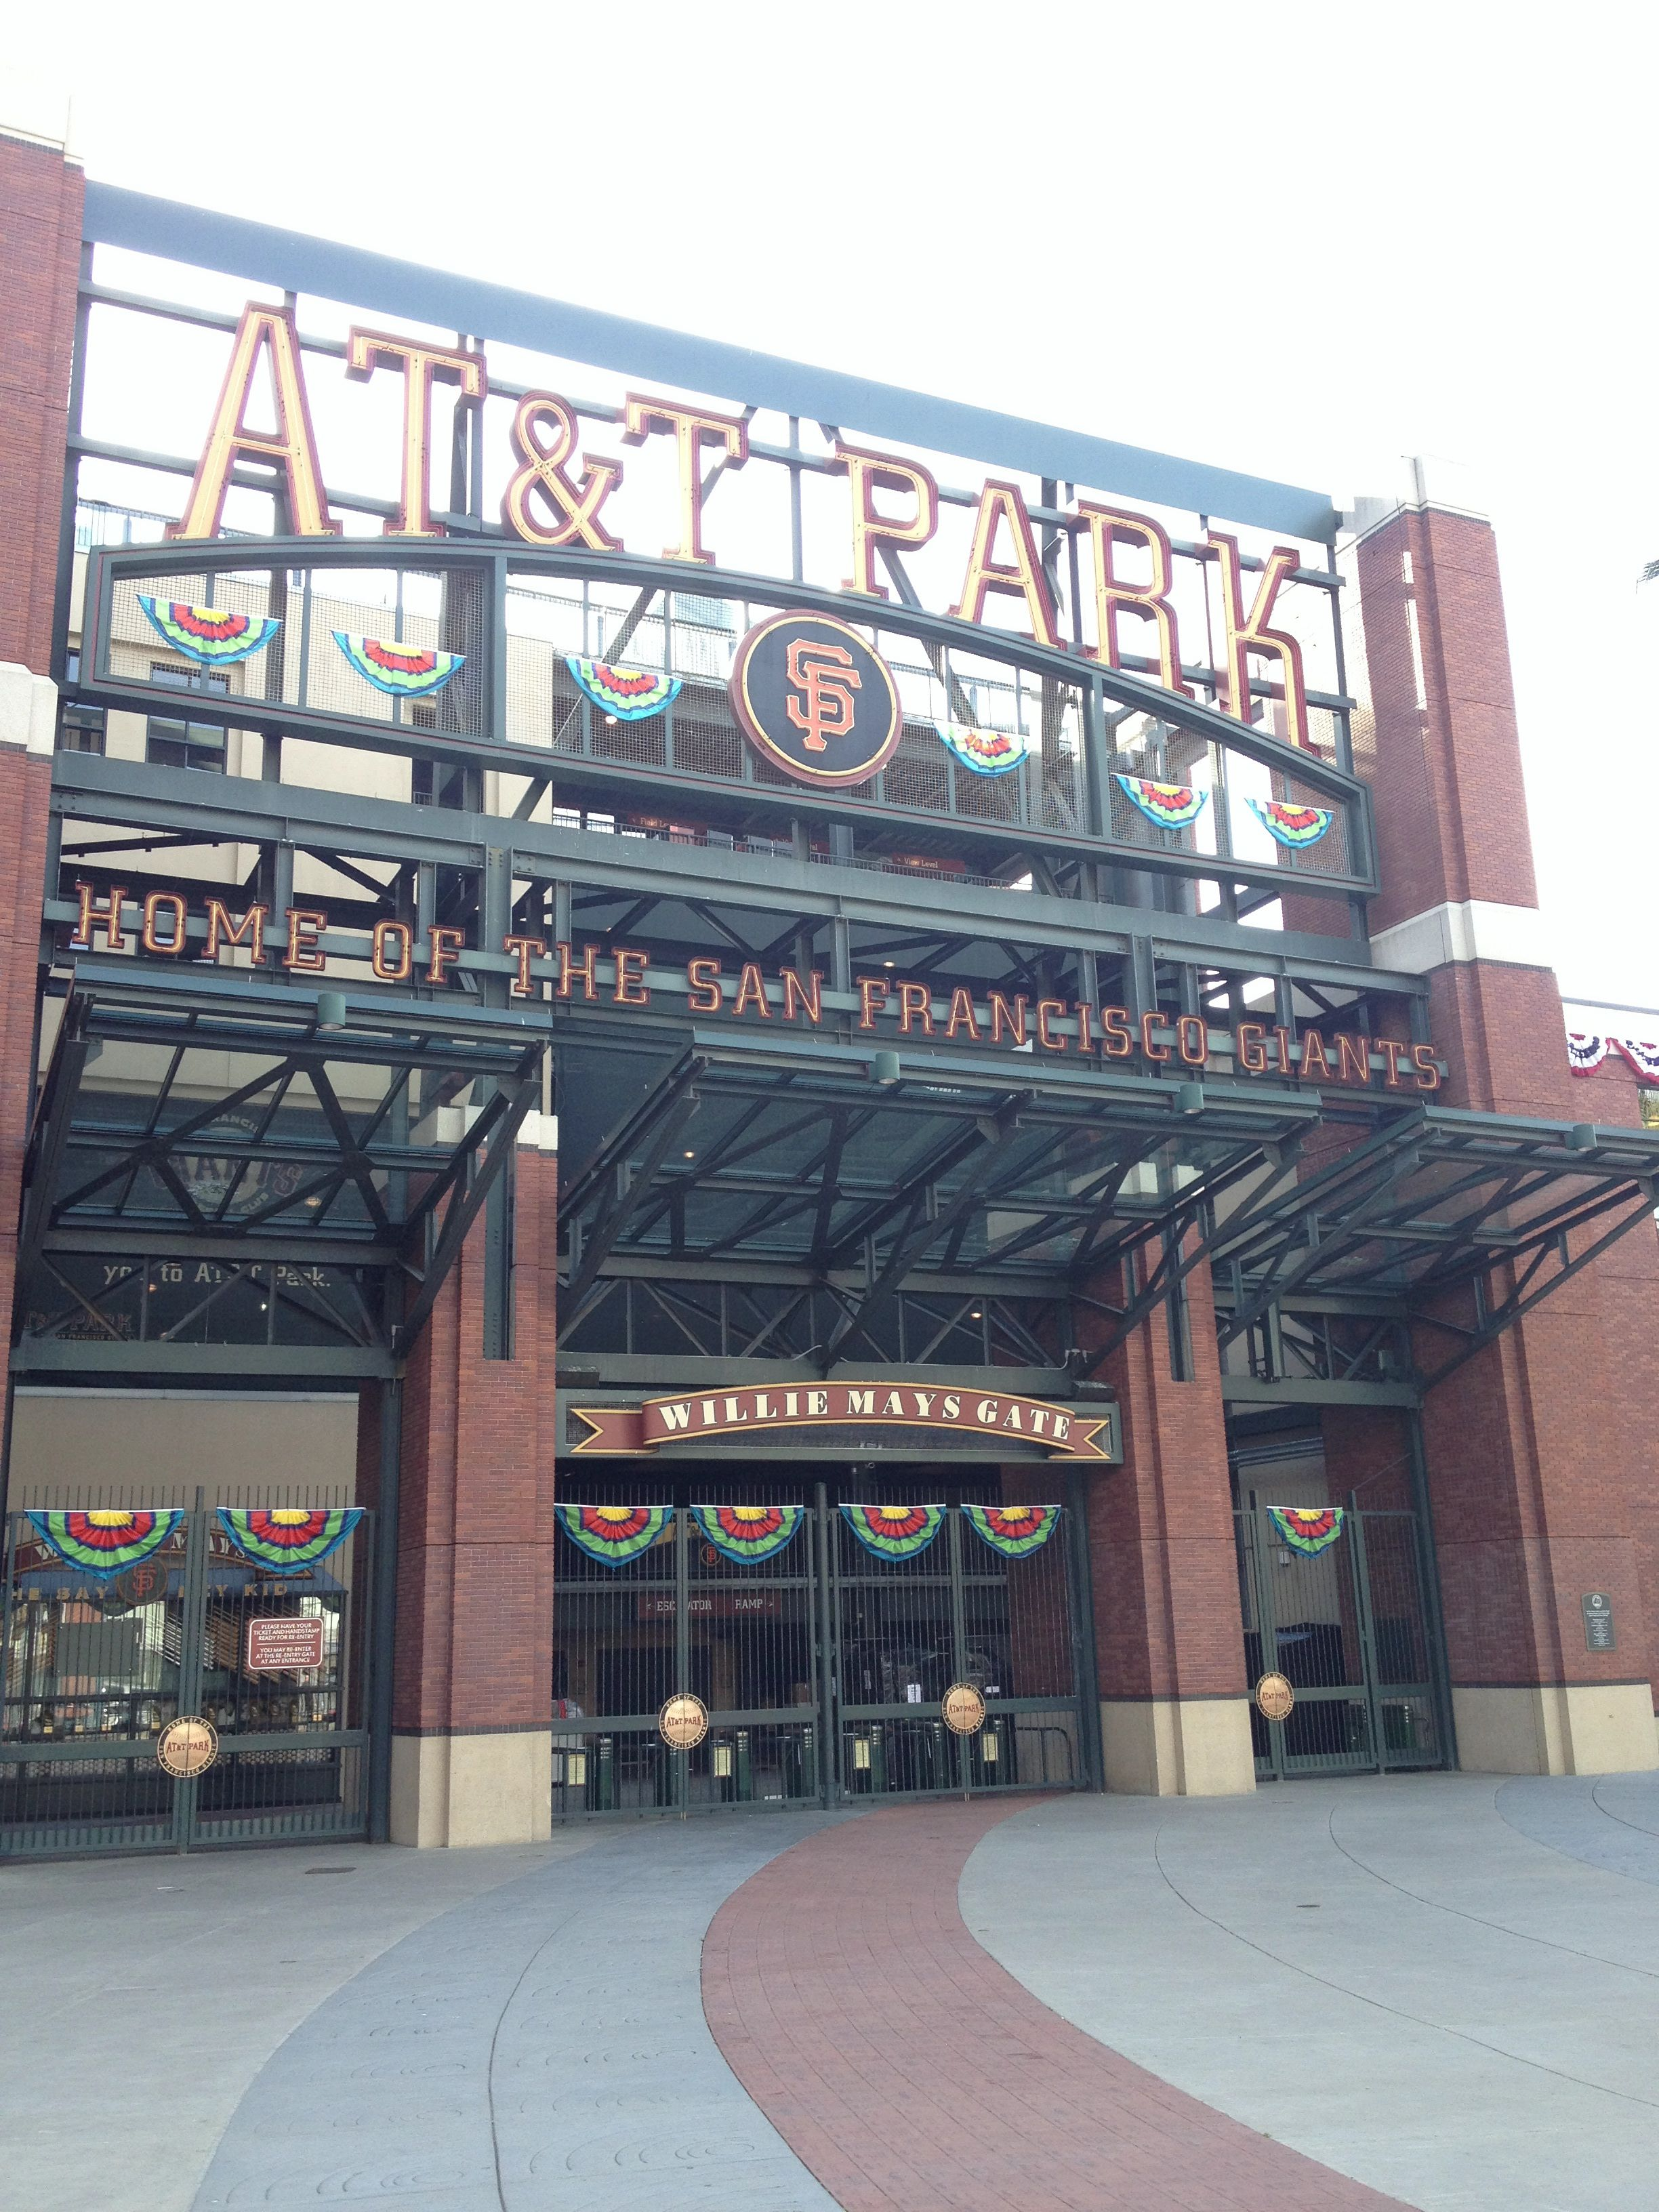 Home of the world champions san francisco giants say hay kid gate